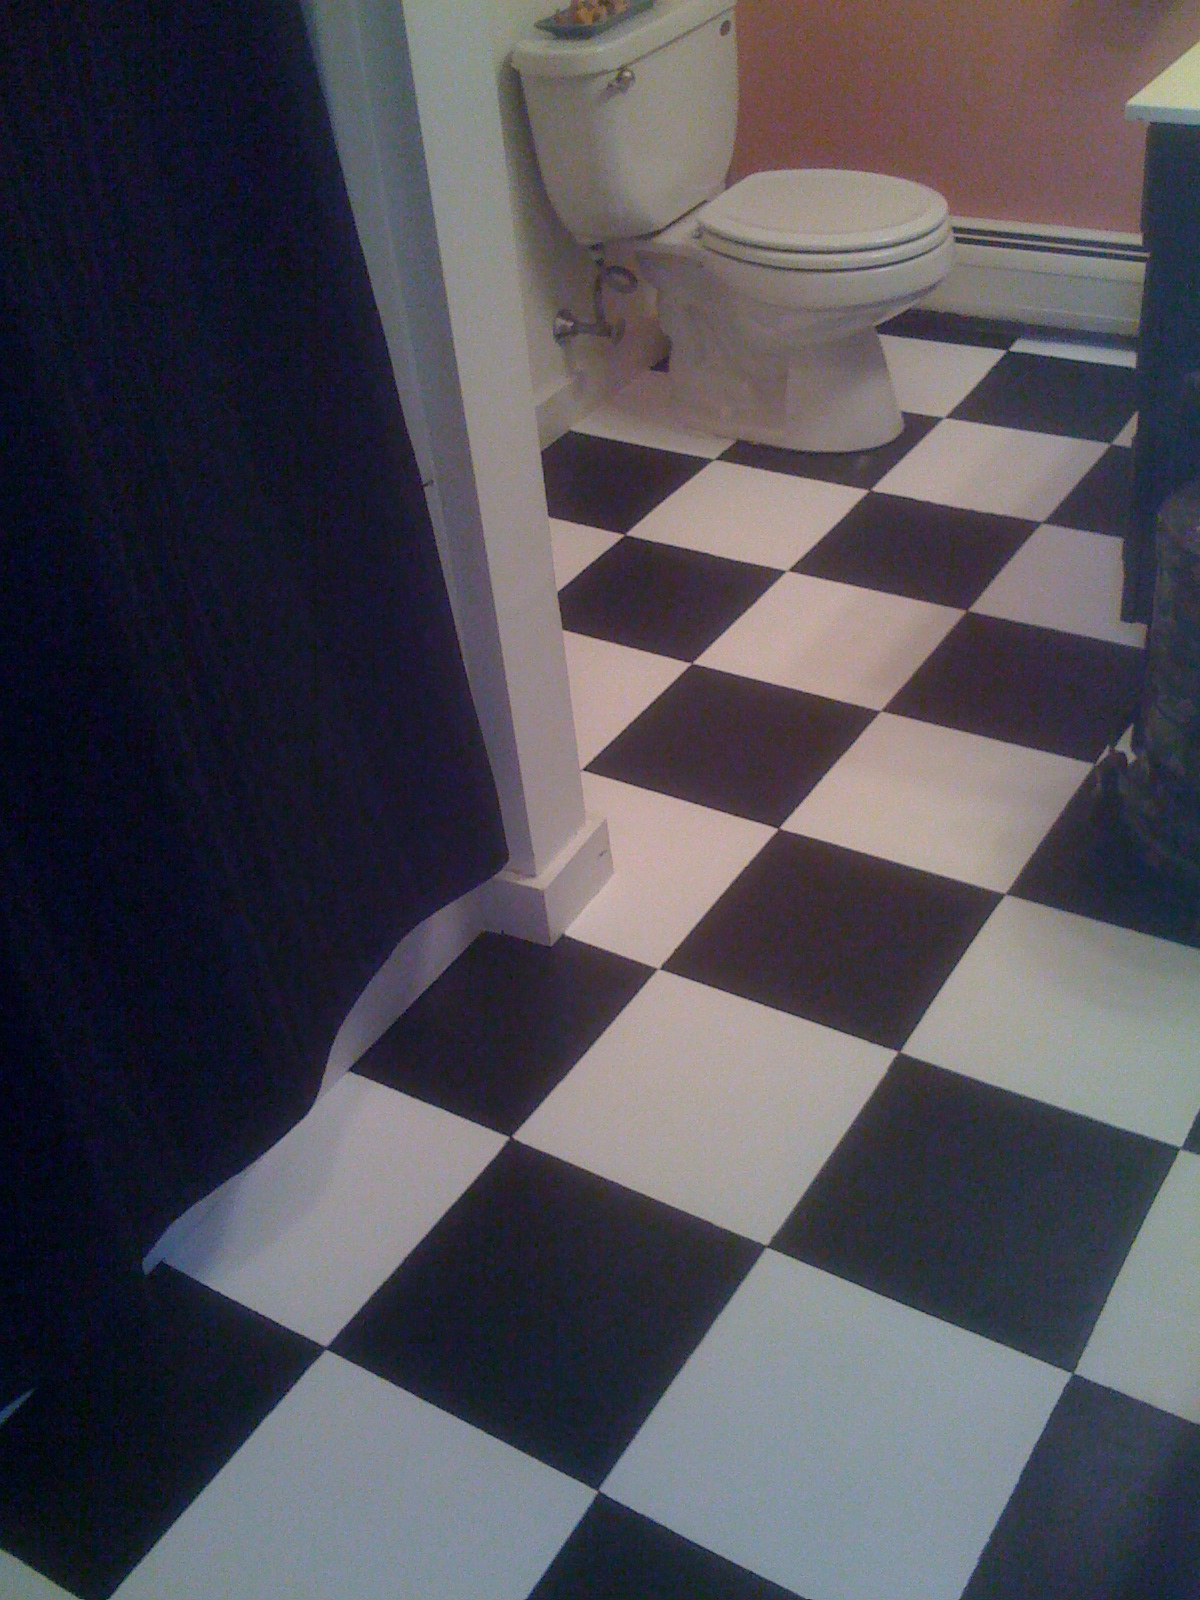 Diy painting old vinyl floor tiles mary wiseman designs the whole bathroom appears bigger cleaner and the eye is fooled into thinking these are actual tiles when i just painted over the old vinyl floor tiles dailygadgetfo Image collections